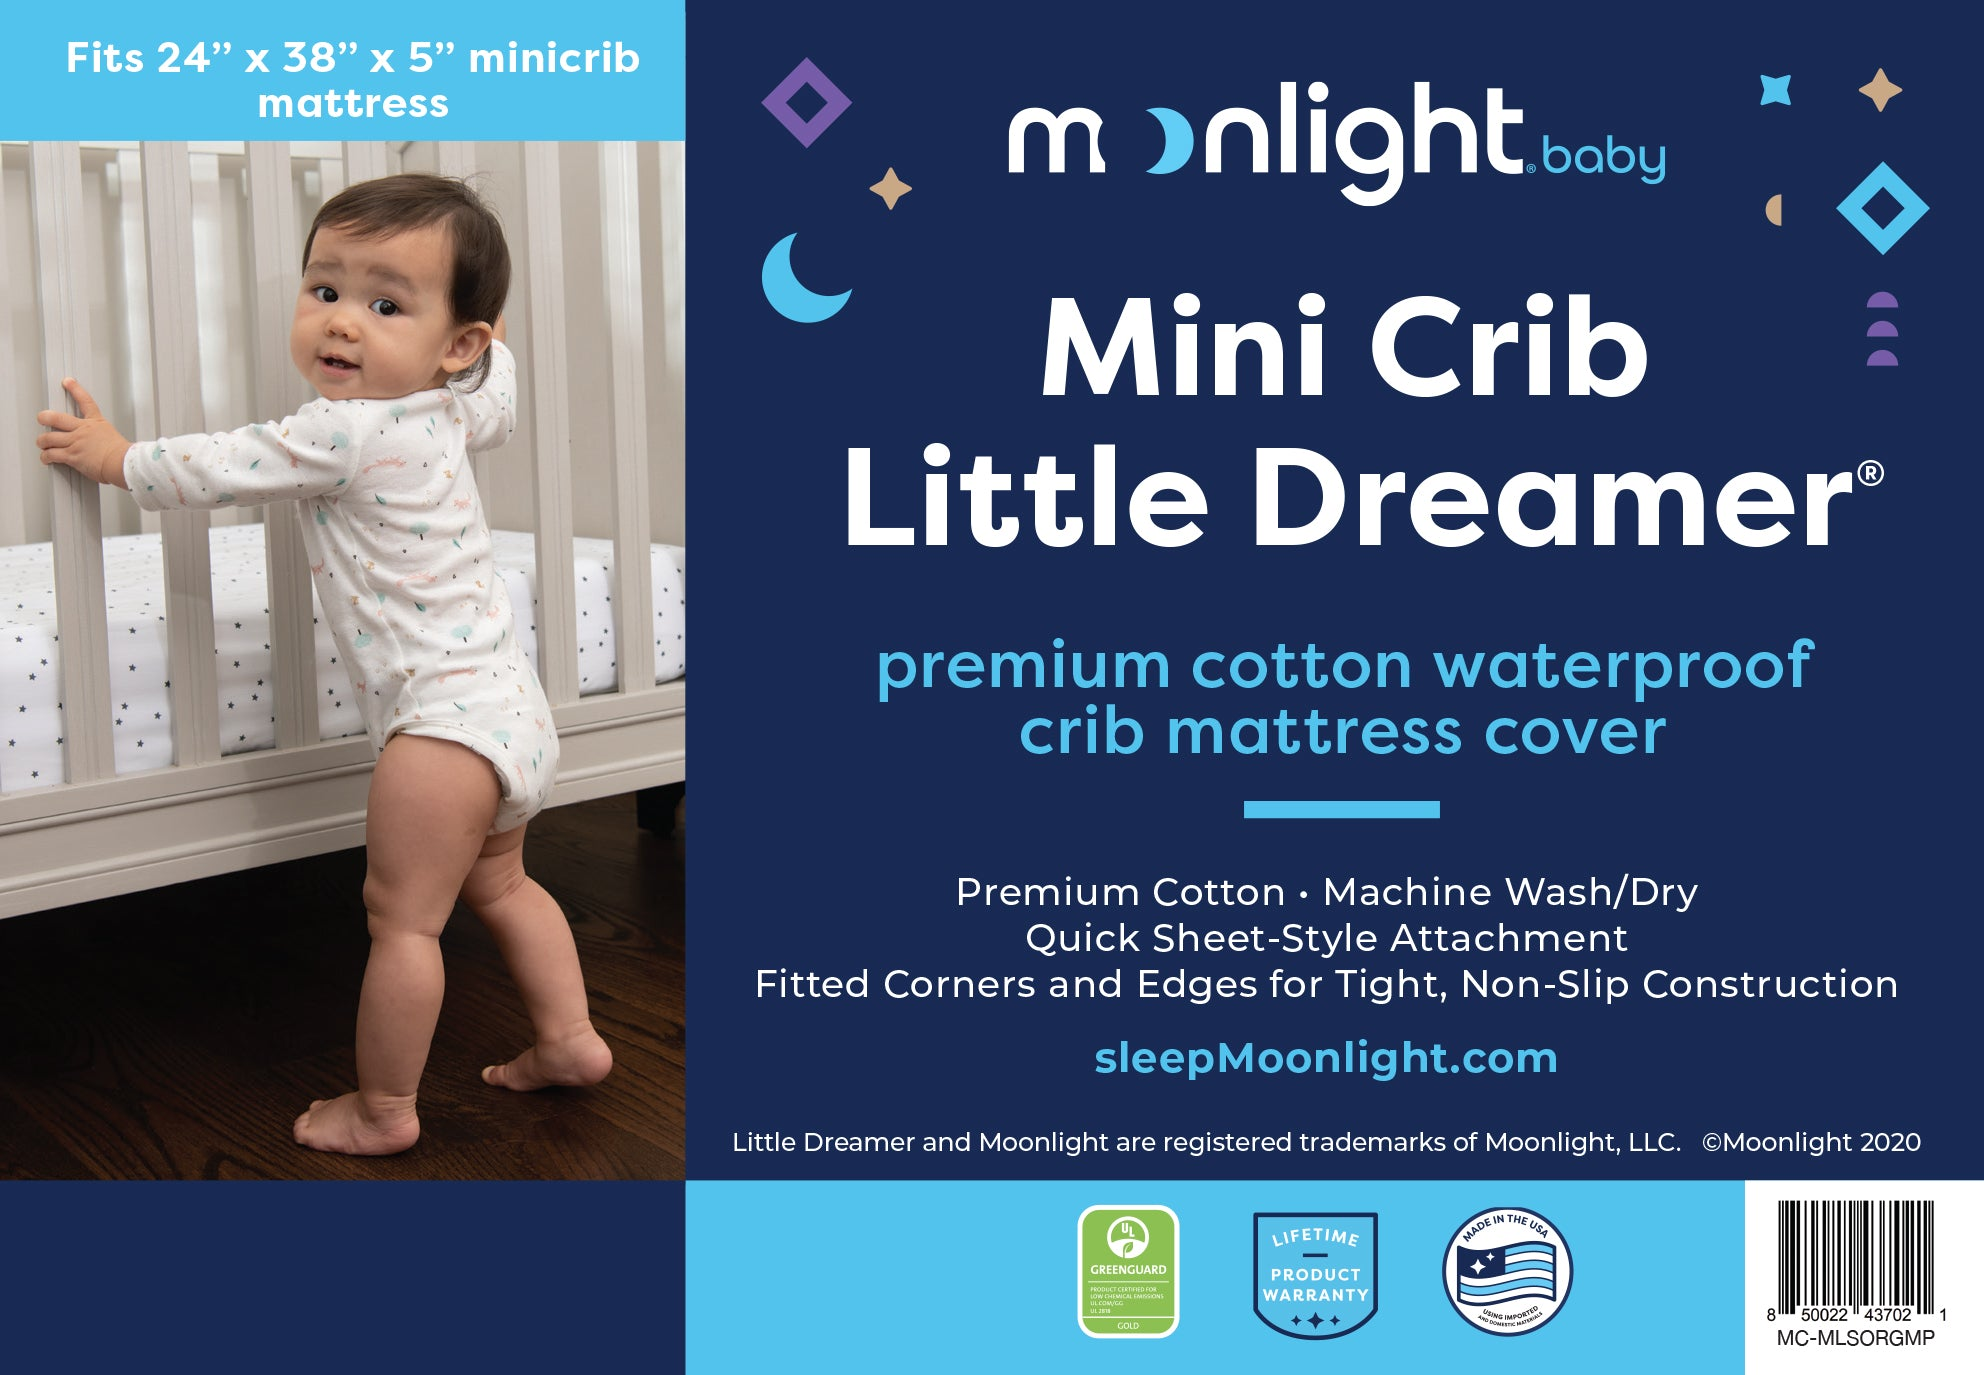 Mini Crib Little Dreamer Premium Cotton Waterproof Mattress Cover